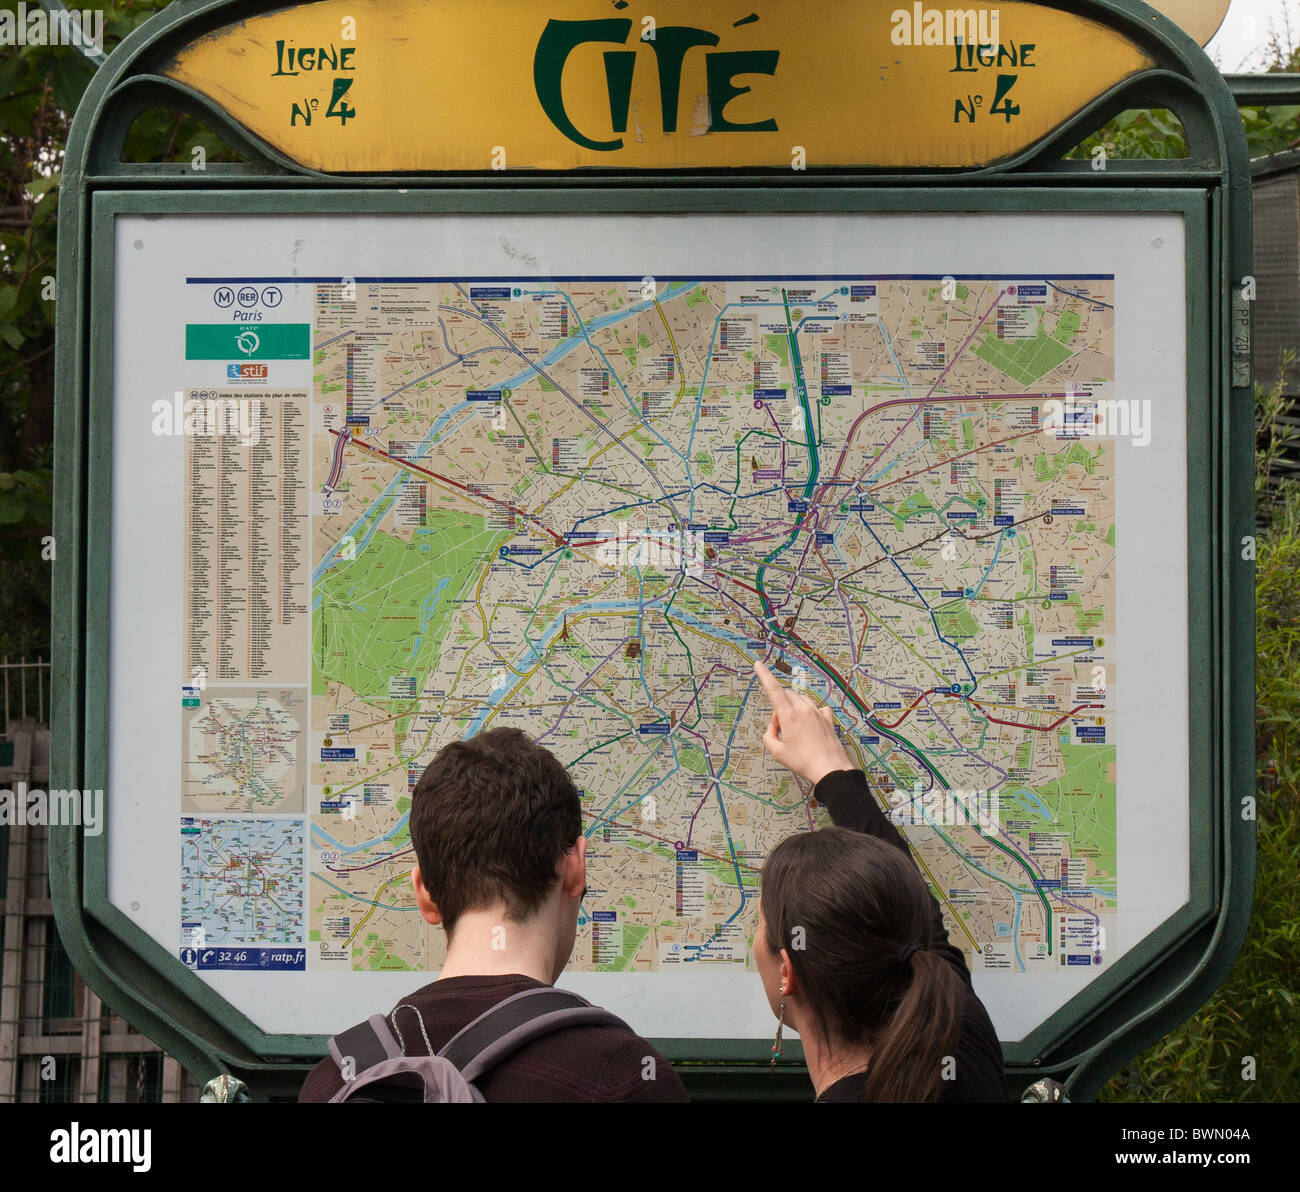 Of Paris Metro Map on map of giza, map of nyc subway, map of miami, map berlin metro, map of mediterranean sea, map of occupied palestinian territories, map of salt lake temple, map of f train, map of tokyo subway, map of hong kong mtr, map of upper peninsula of michigan, map of barents sea, map rome metro, map of untied states, map of lower east side of manhattan, map of moscow subway, map of new york subway, map of london underground, paris arrondissement map with metro, map of greater boston area,